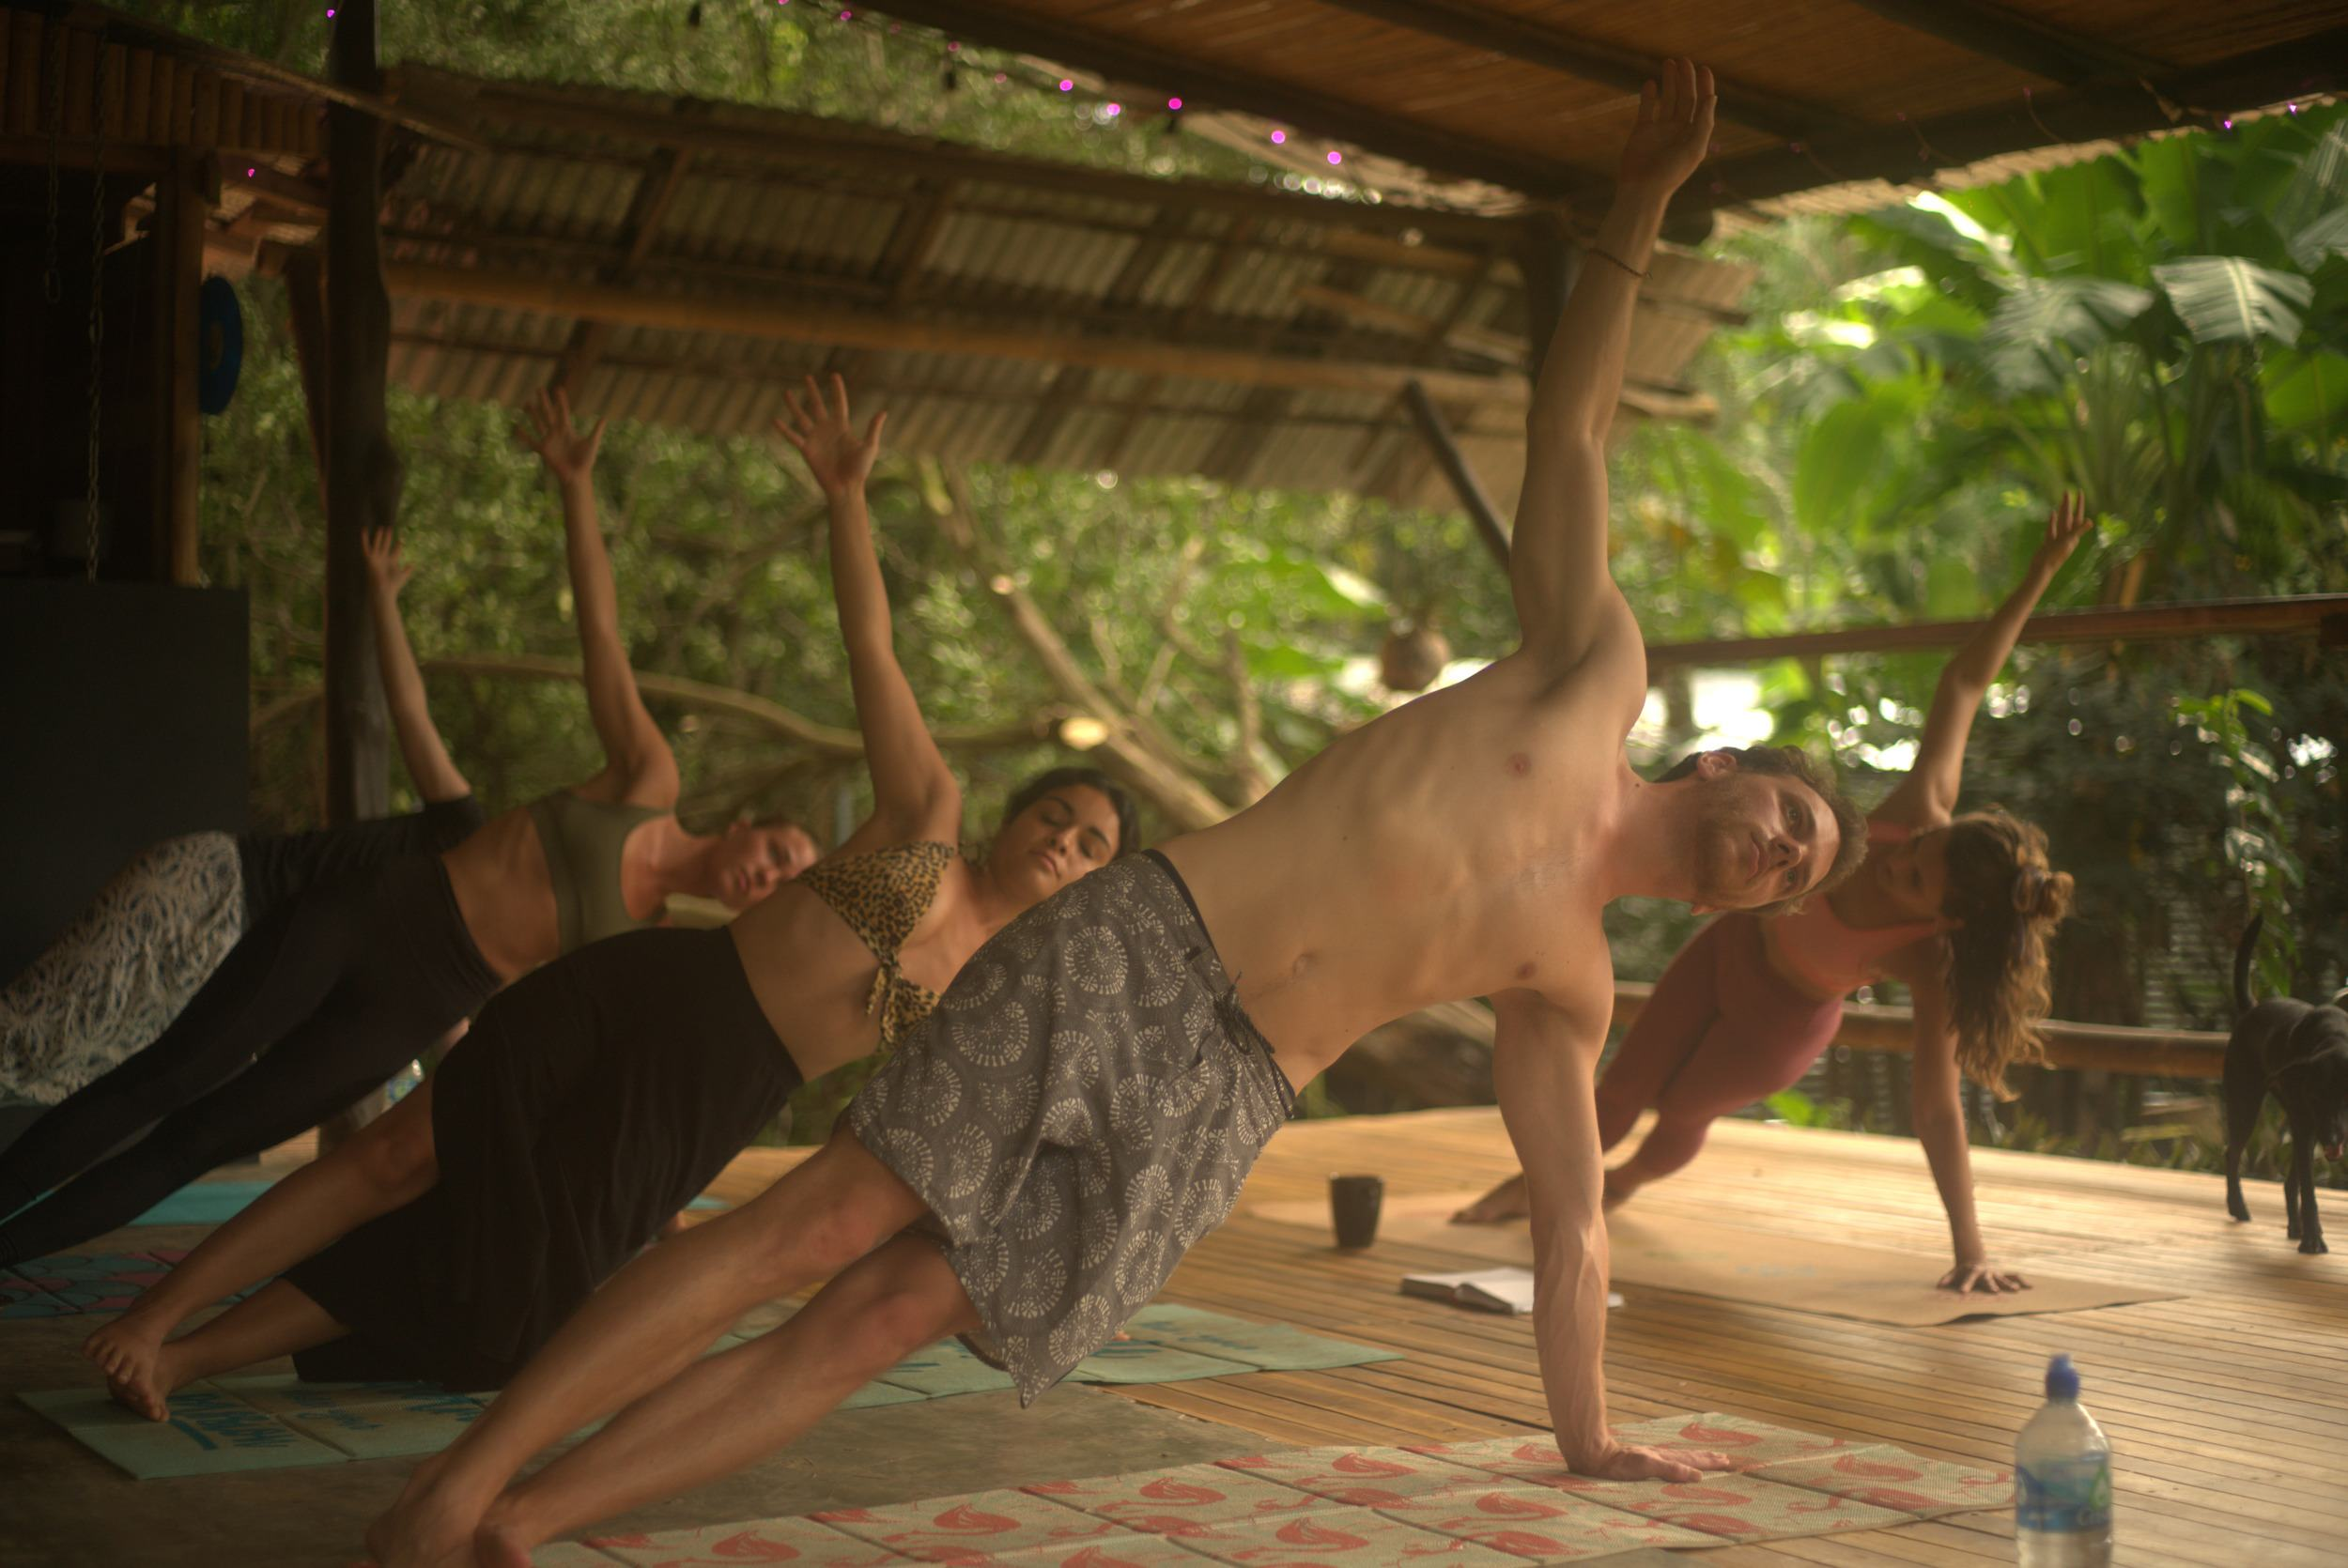 Some students in a hostel doing yoga